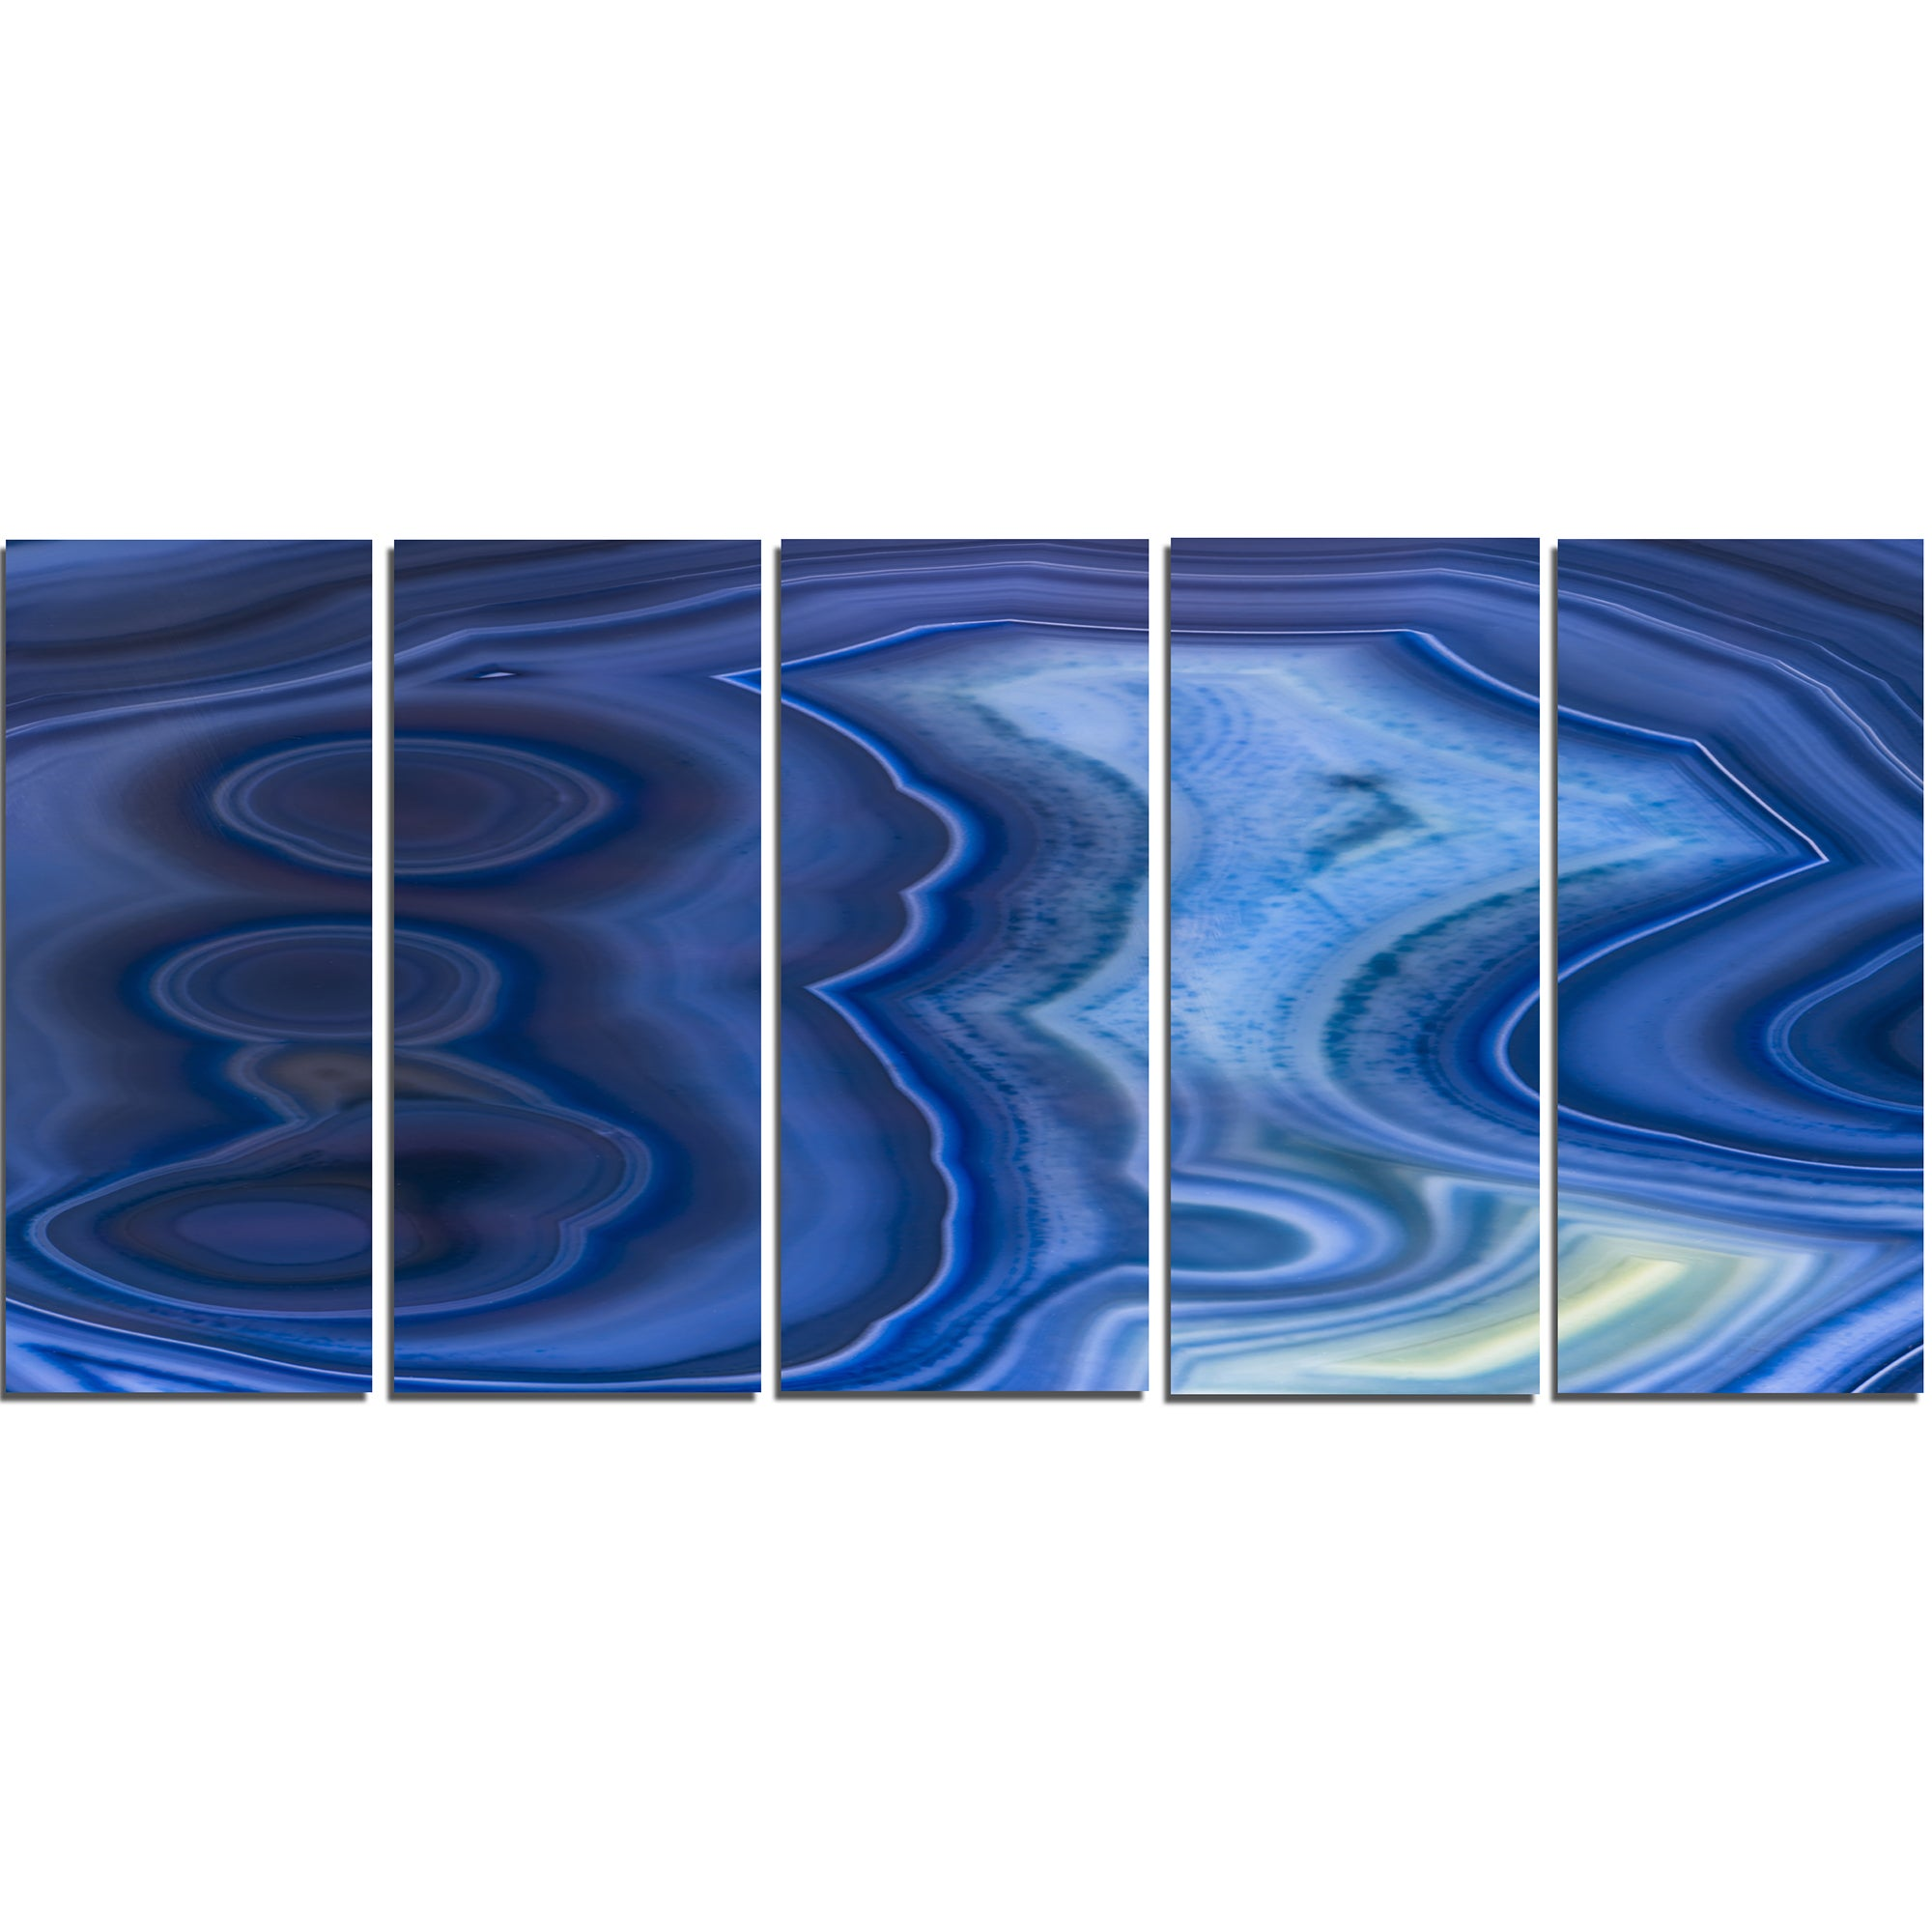 Blue Metal Wall Art Glamorous Designart 'blue Agate Stone Design' Abstract Metal Wall Art  Free Decorating Inspiration